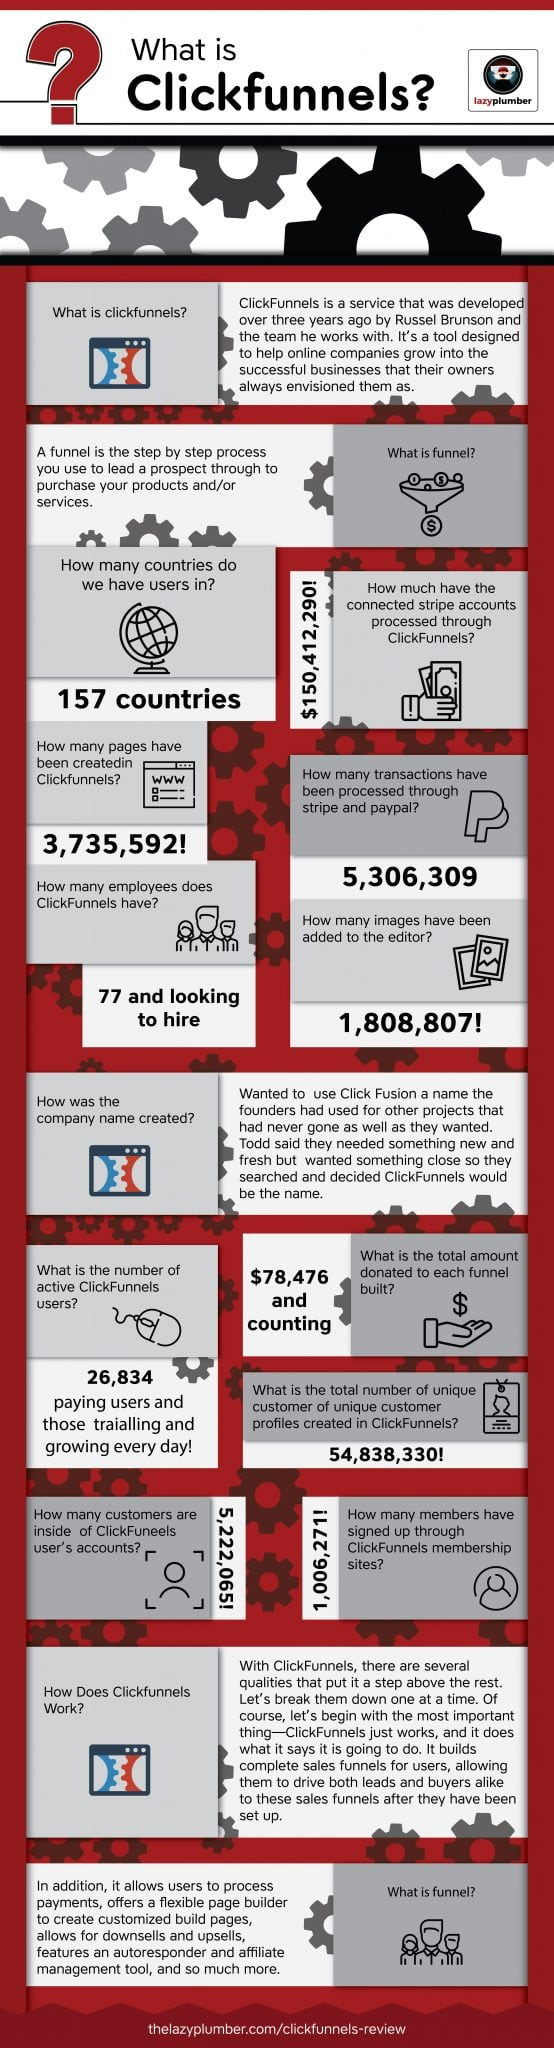 What Does Clickfunnels Phone Number Do?